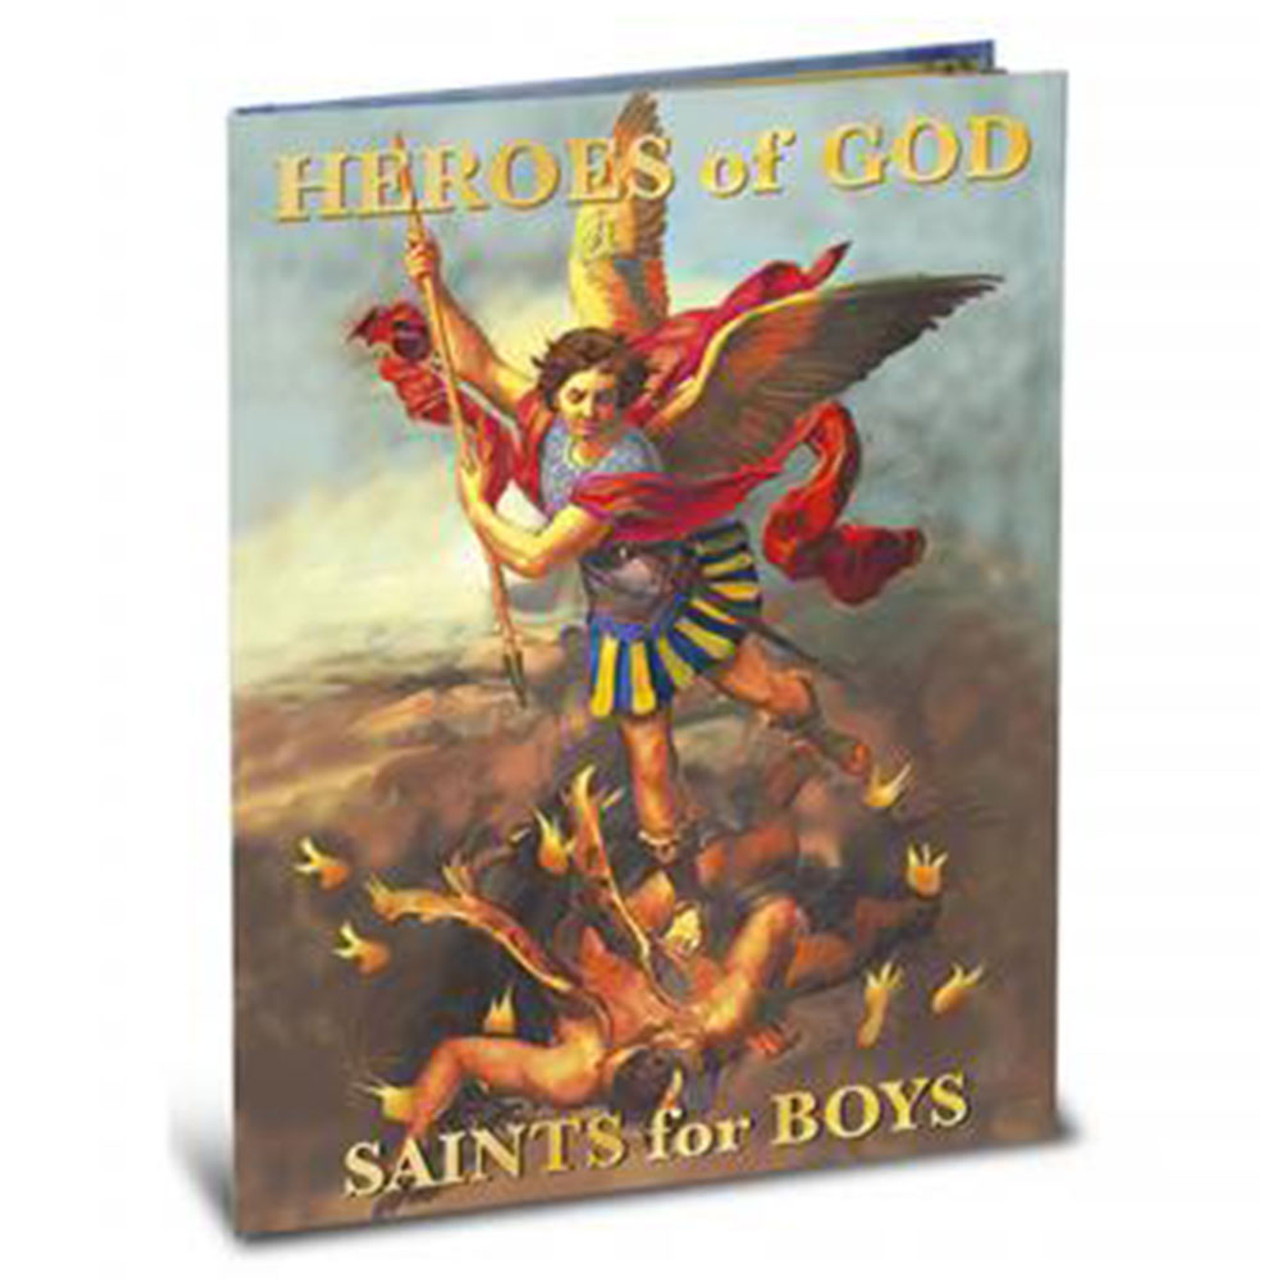 Book of Heroes of God for Boys